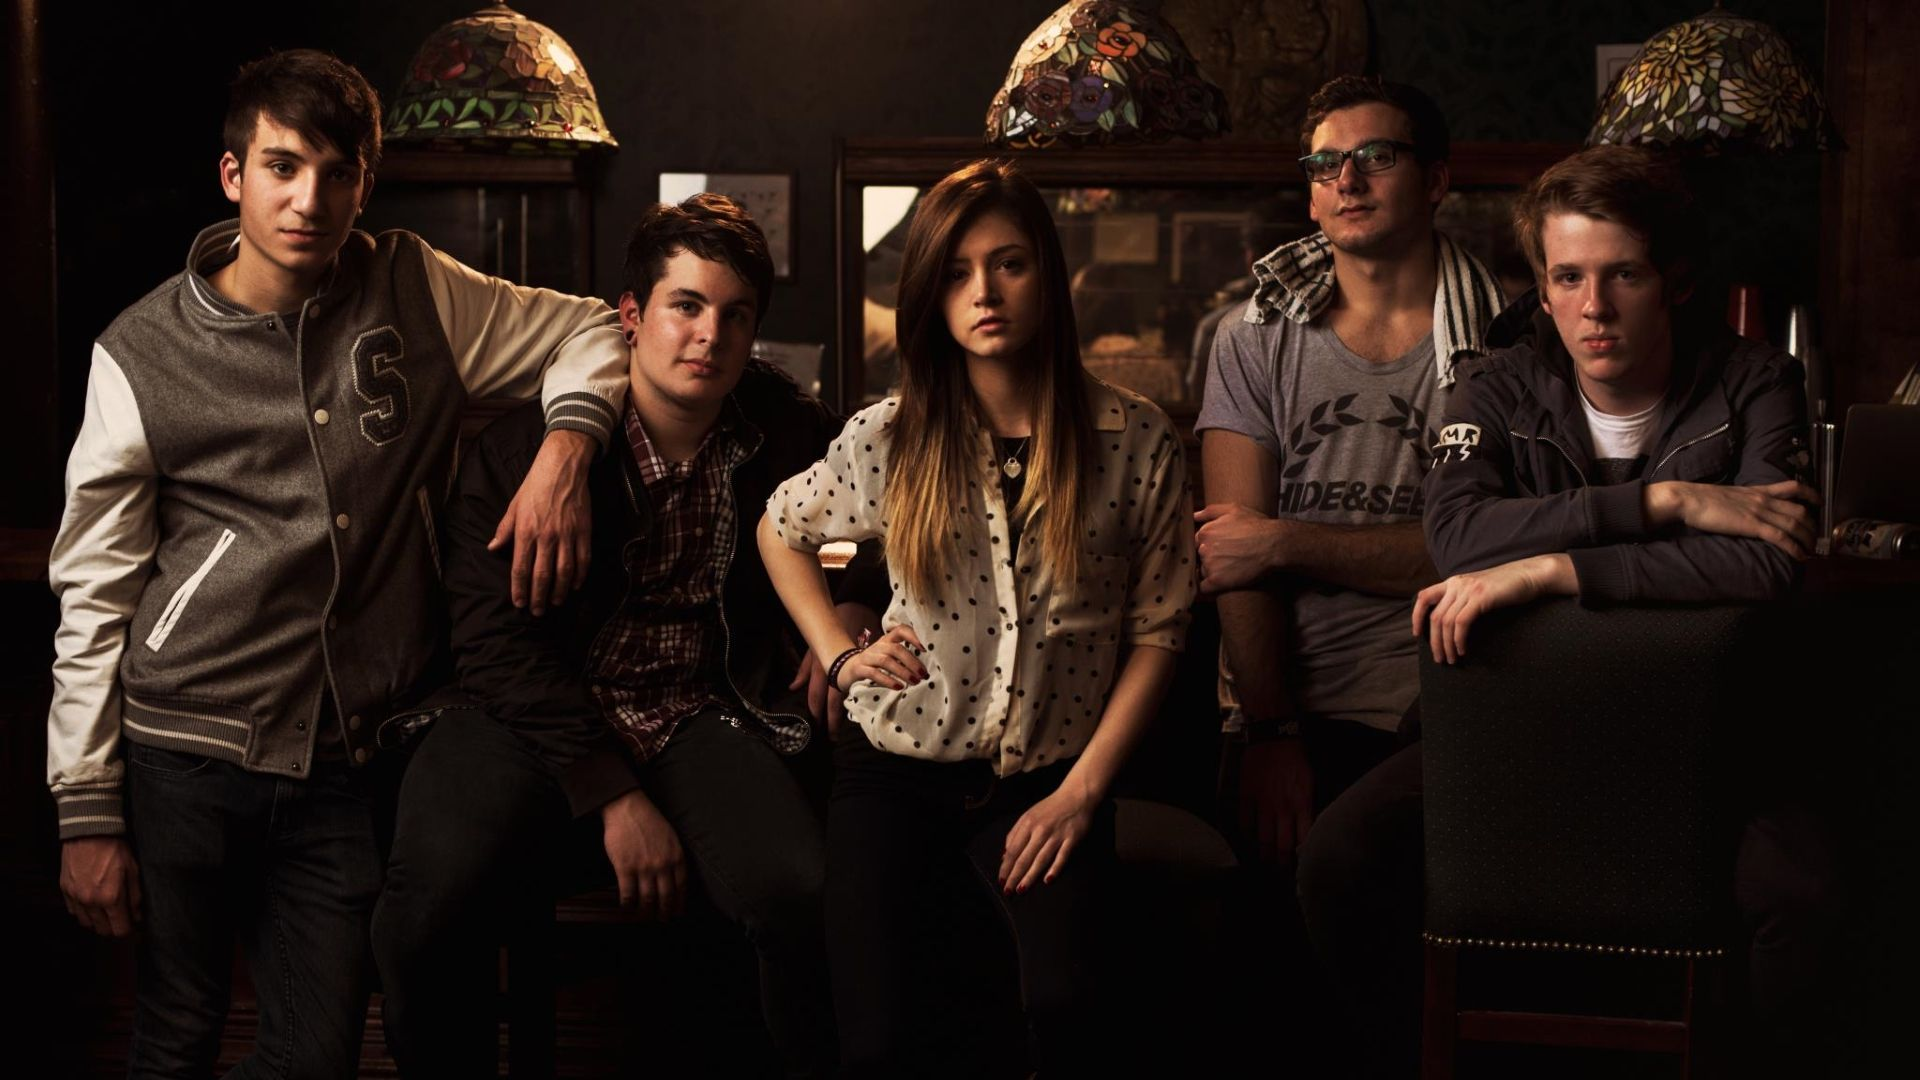 Against The Current Wallpaper Google Search Album Releases Band Pictures Band Photos